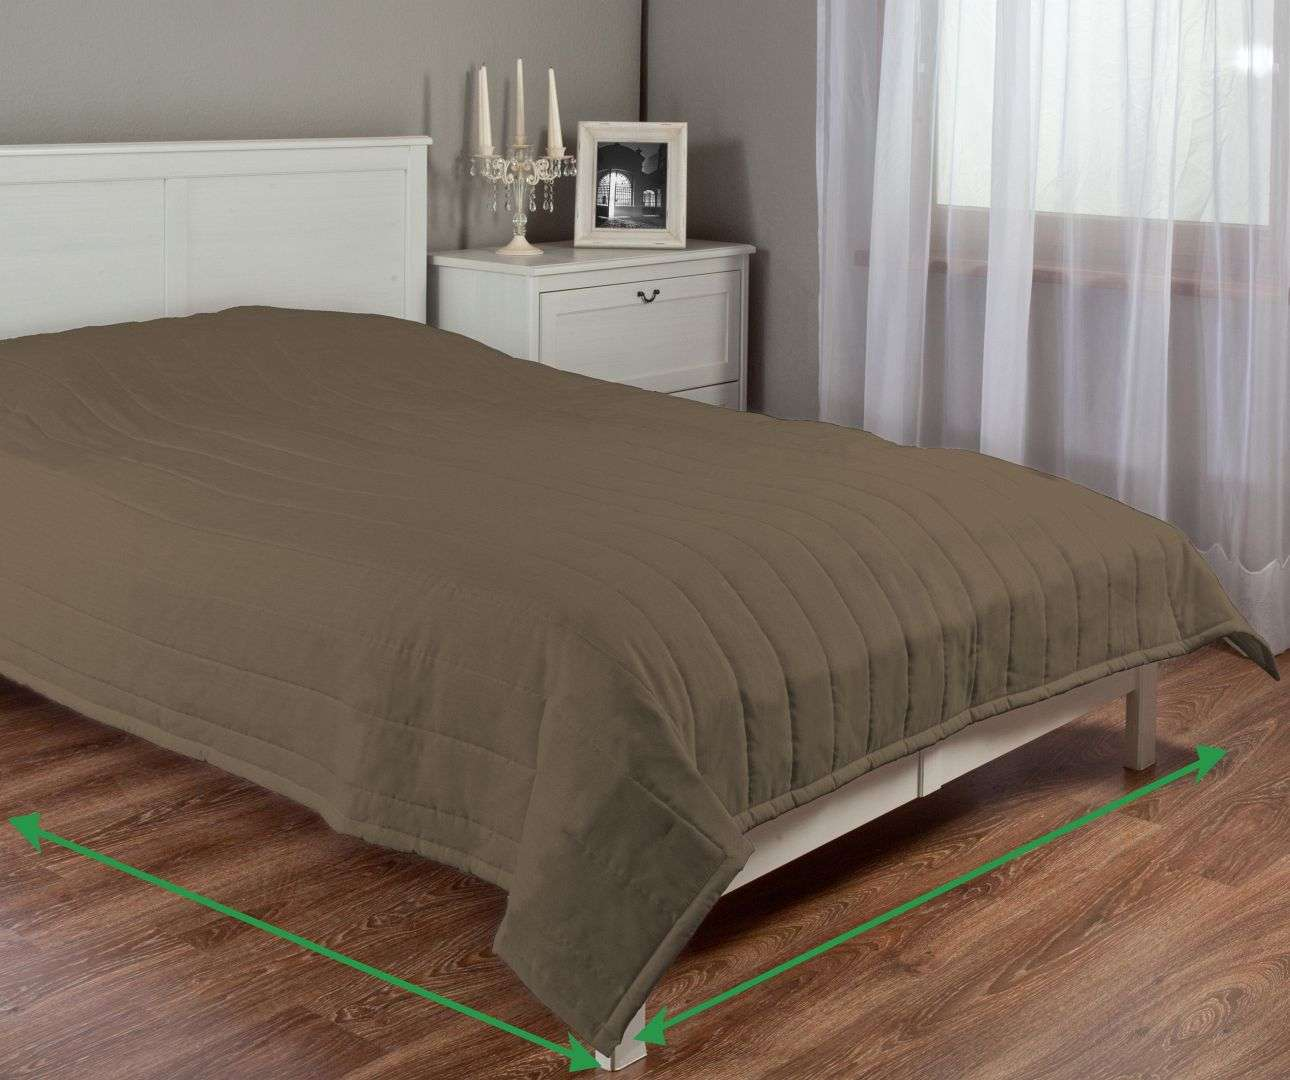 Quilted throw (vertical quilt pattern) in collection Milano, fabric: 150-39